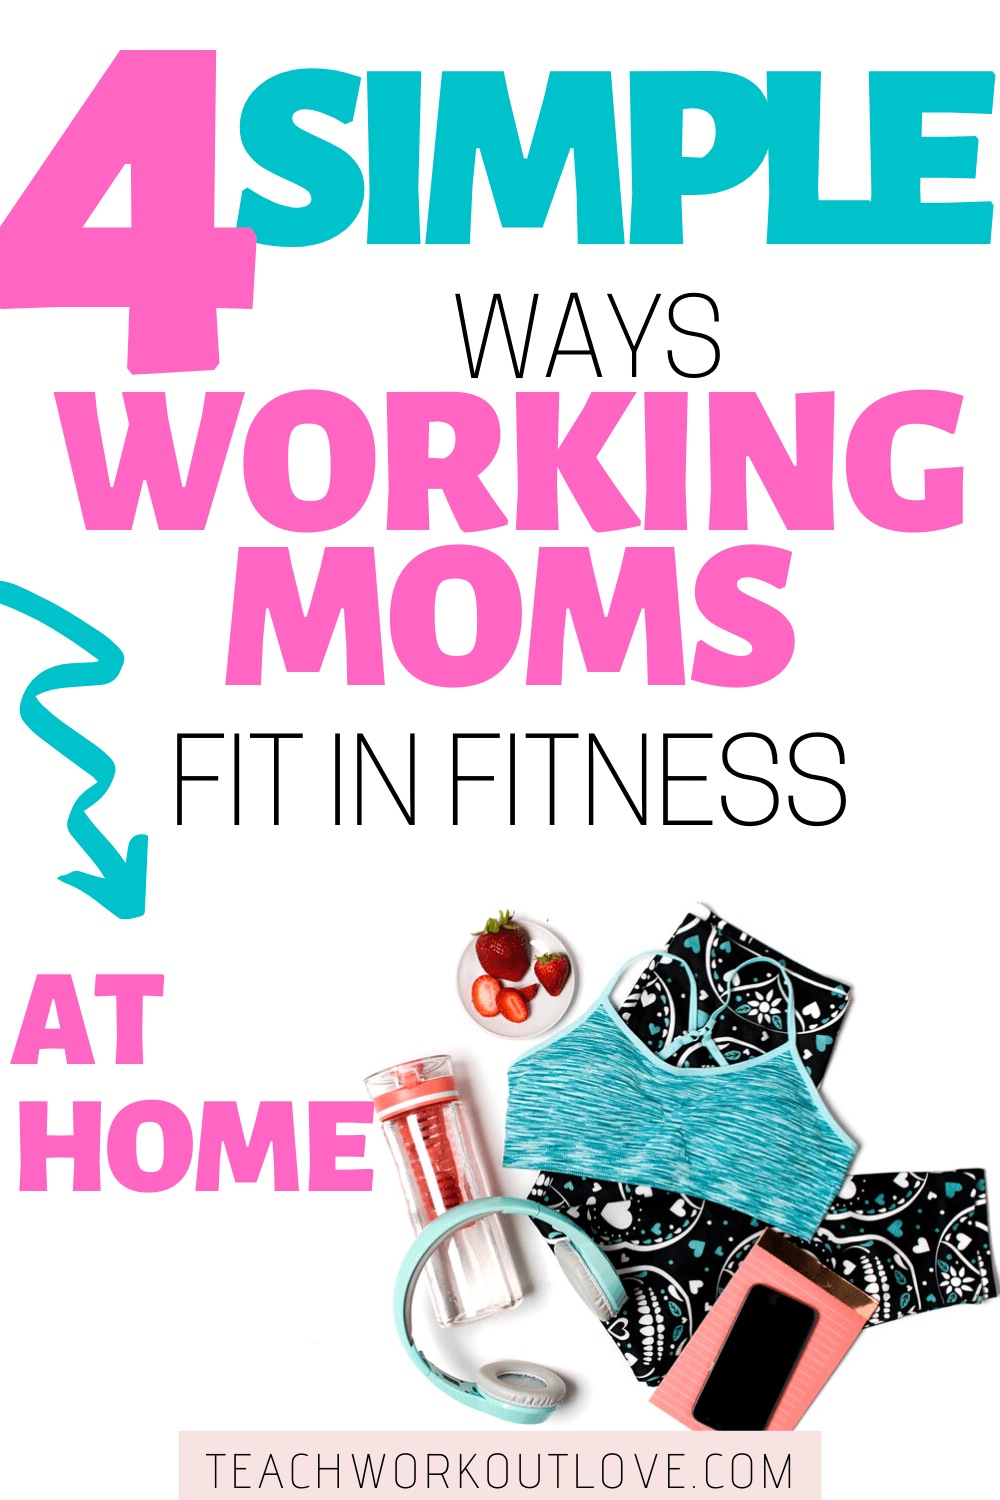 Are you struggling to find time to work out as a working mom? Read on to see how working moms can fit fitness in at home.